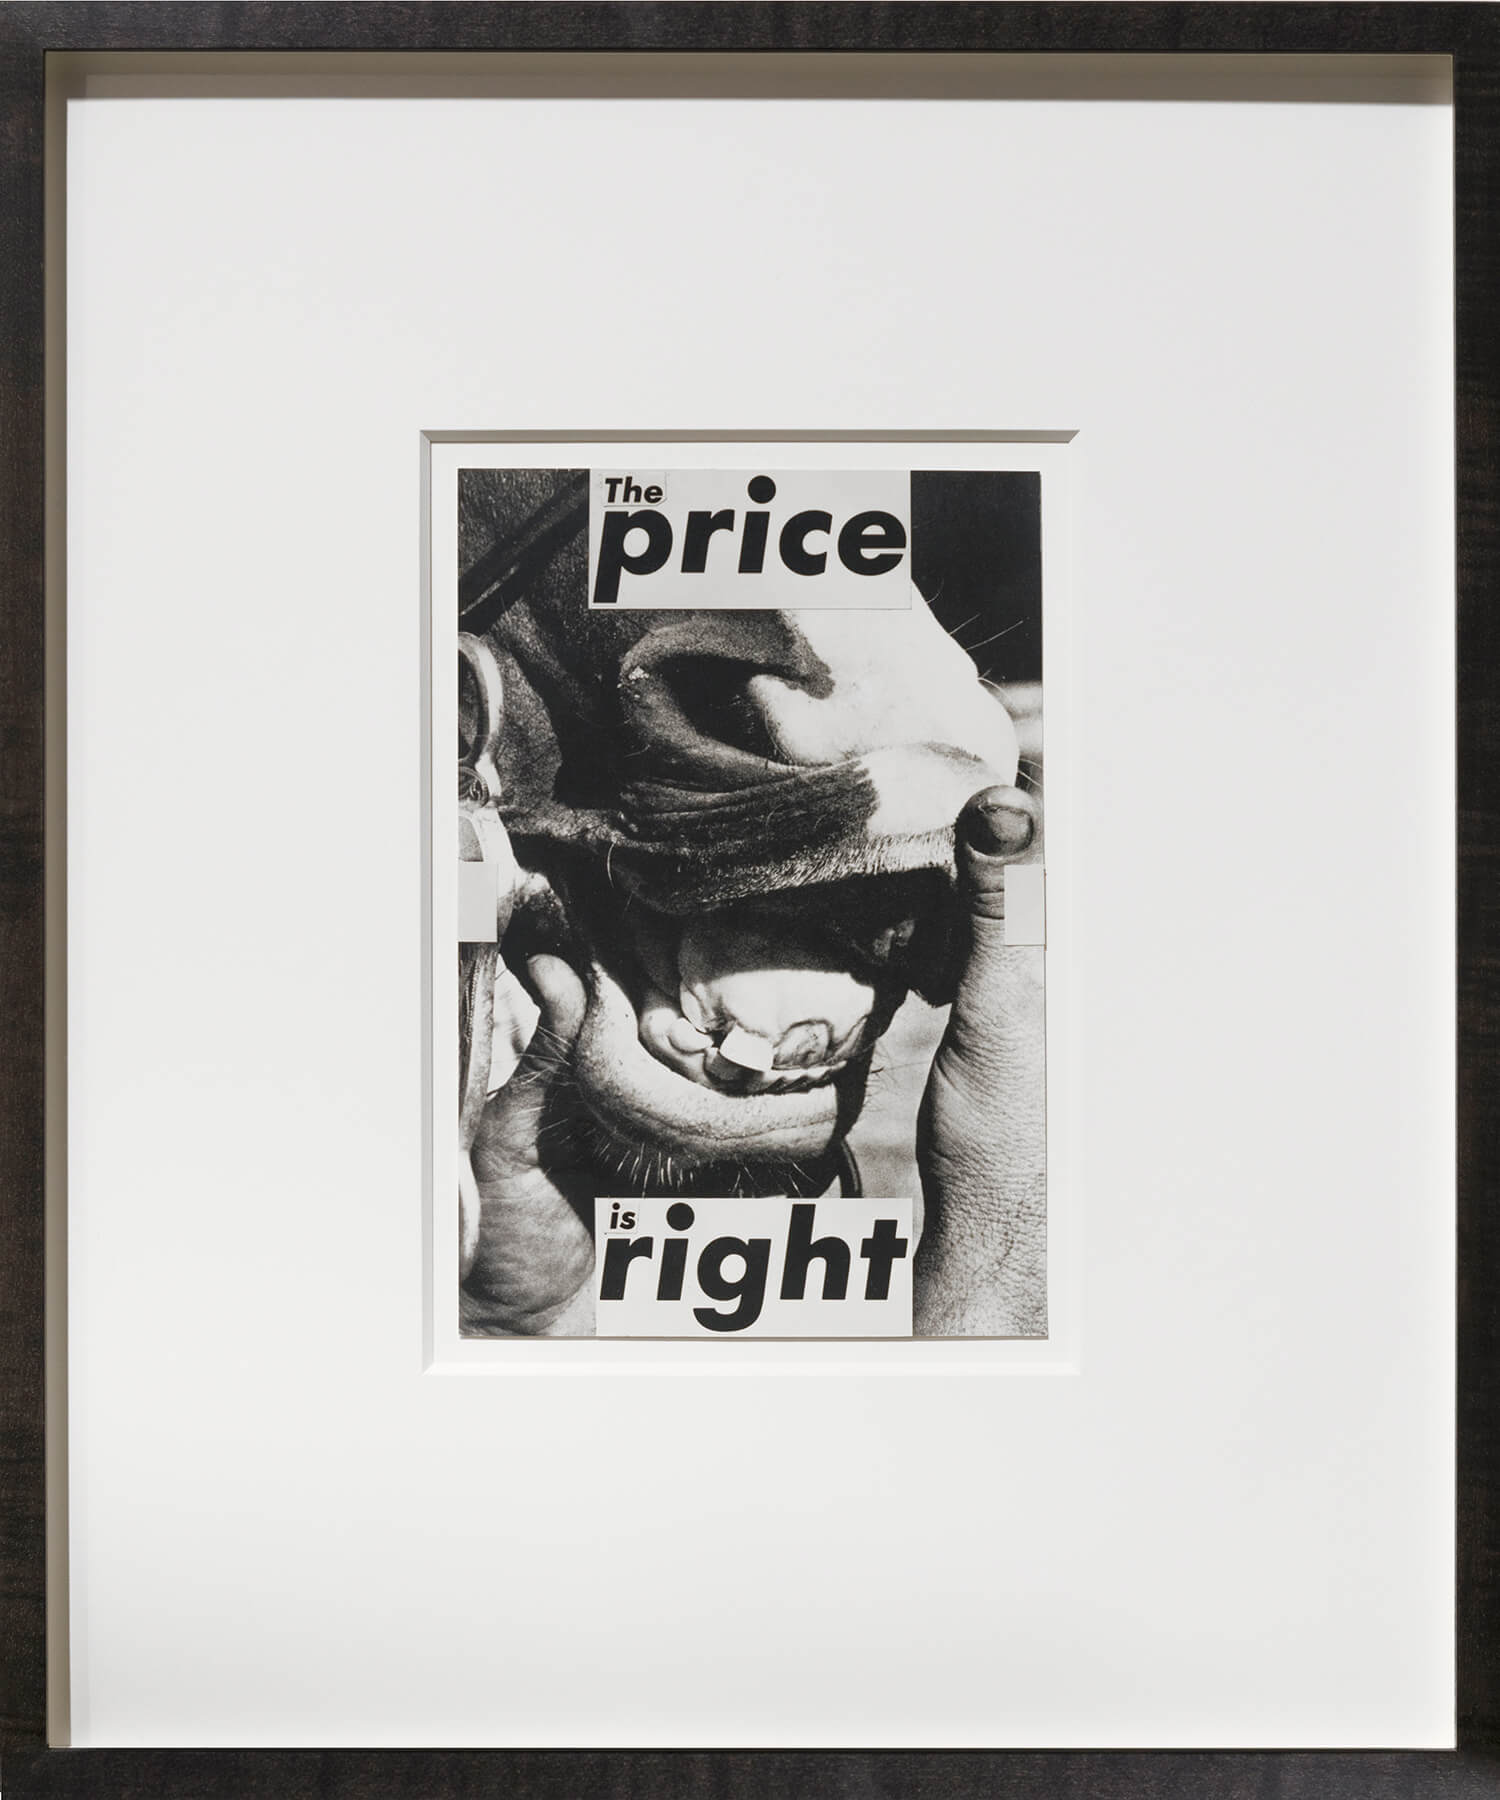 Barbara Kruger                                         'Untitled (The Price is Right)', 1987                                         8 1/2 x 5 3/4 Inches                                          mixed media, paper